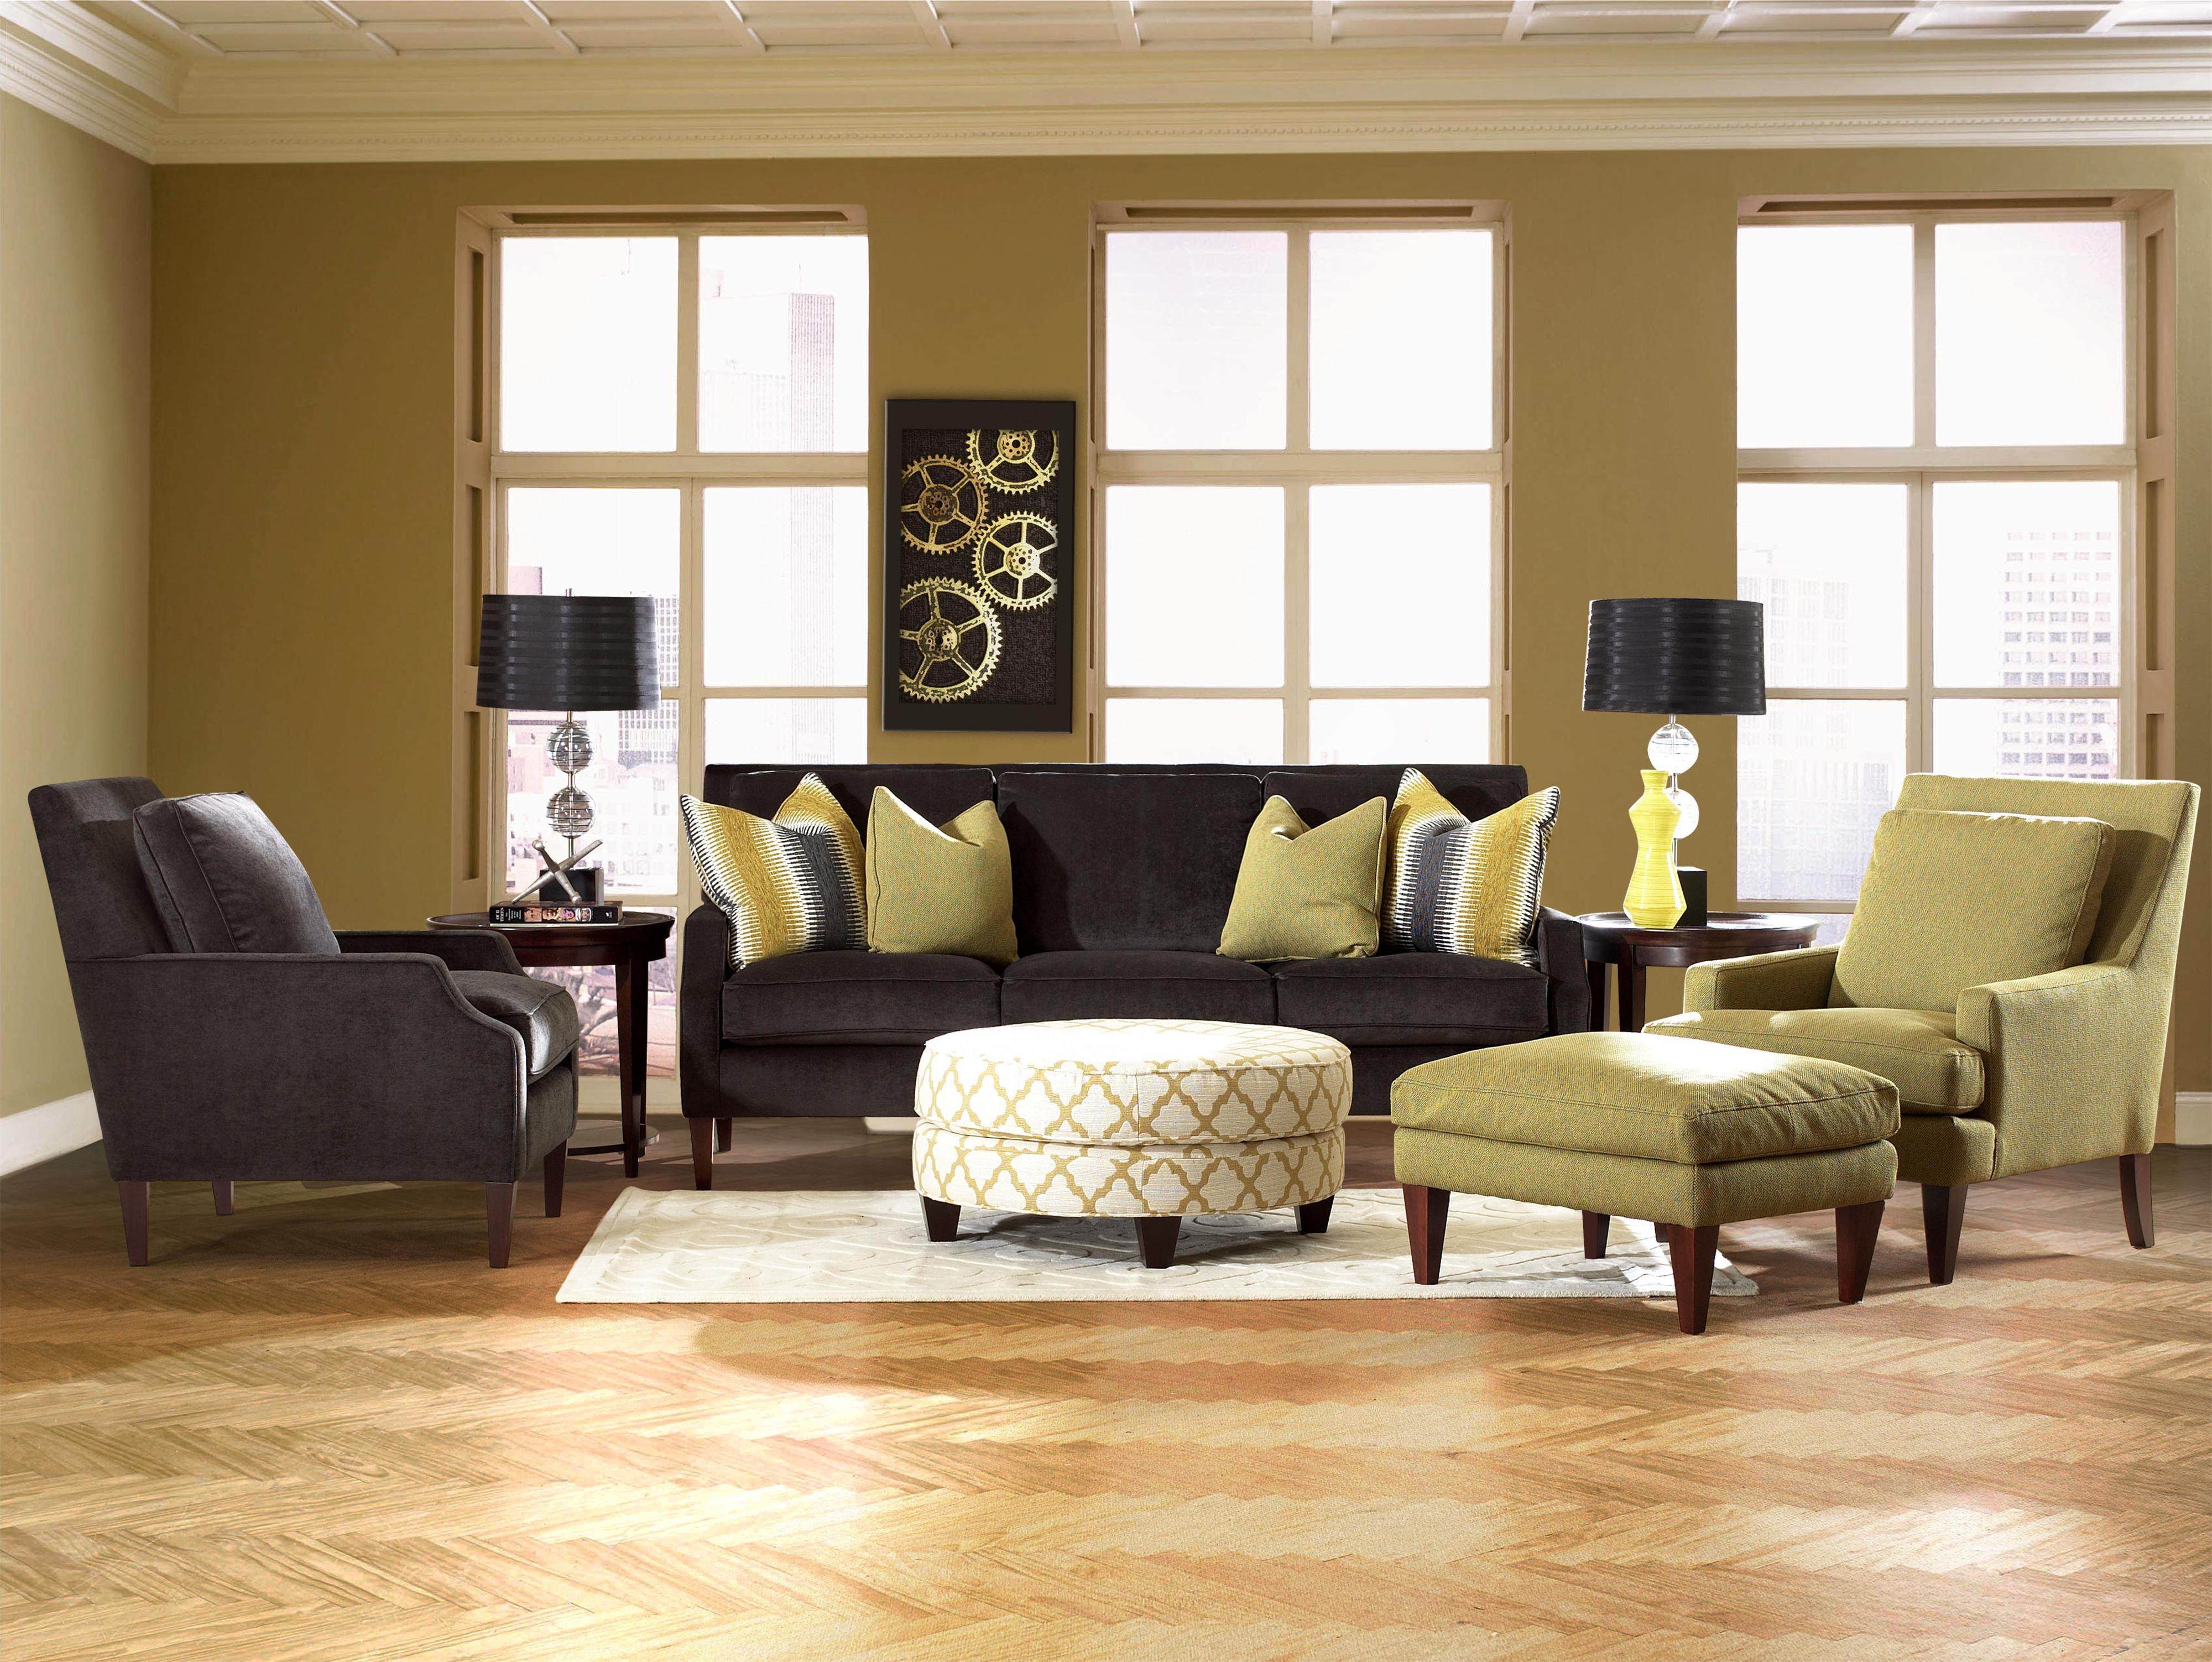 Klaussner Becca Stationary Living Room Group - Item Number: D92400 Living Room Group 1